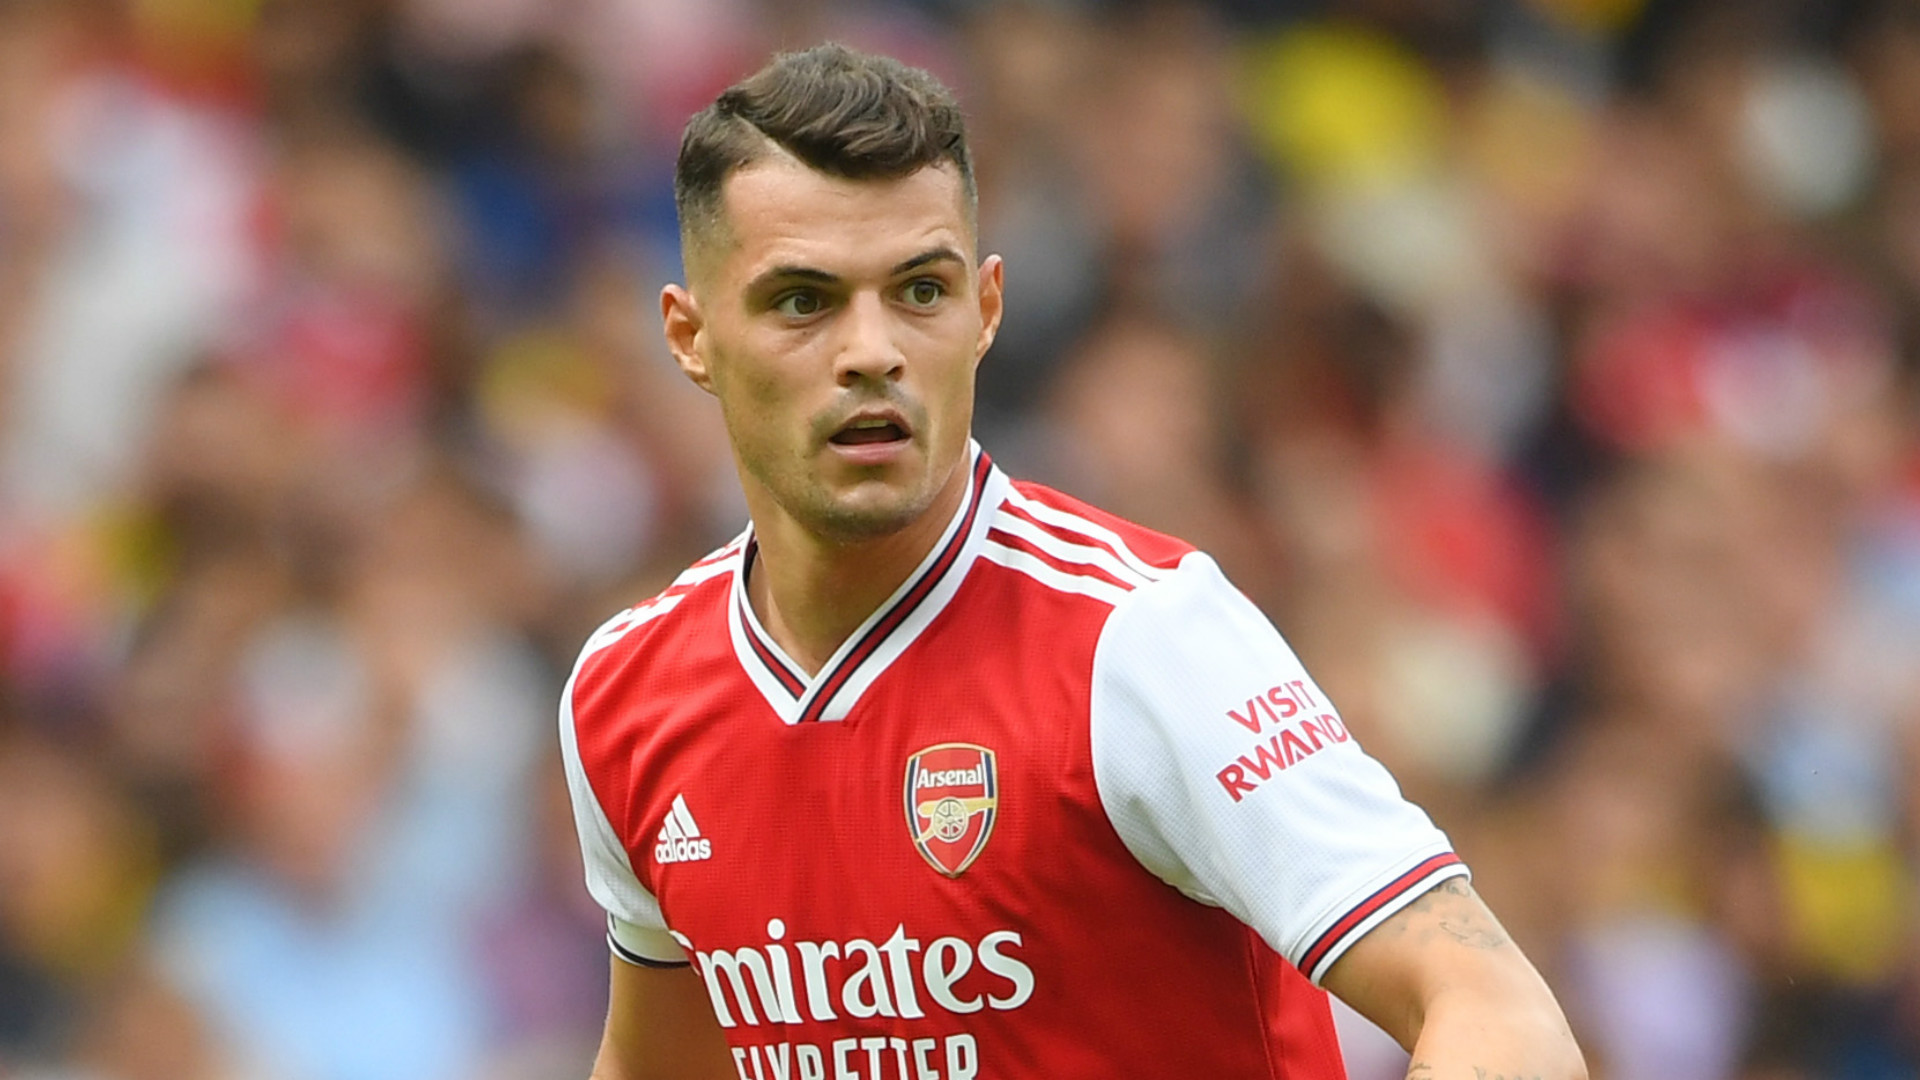 Xhaka reveals injury issue which will have impacted on Arsenal form